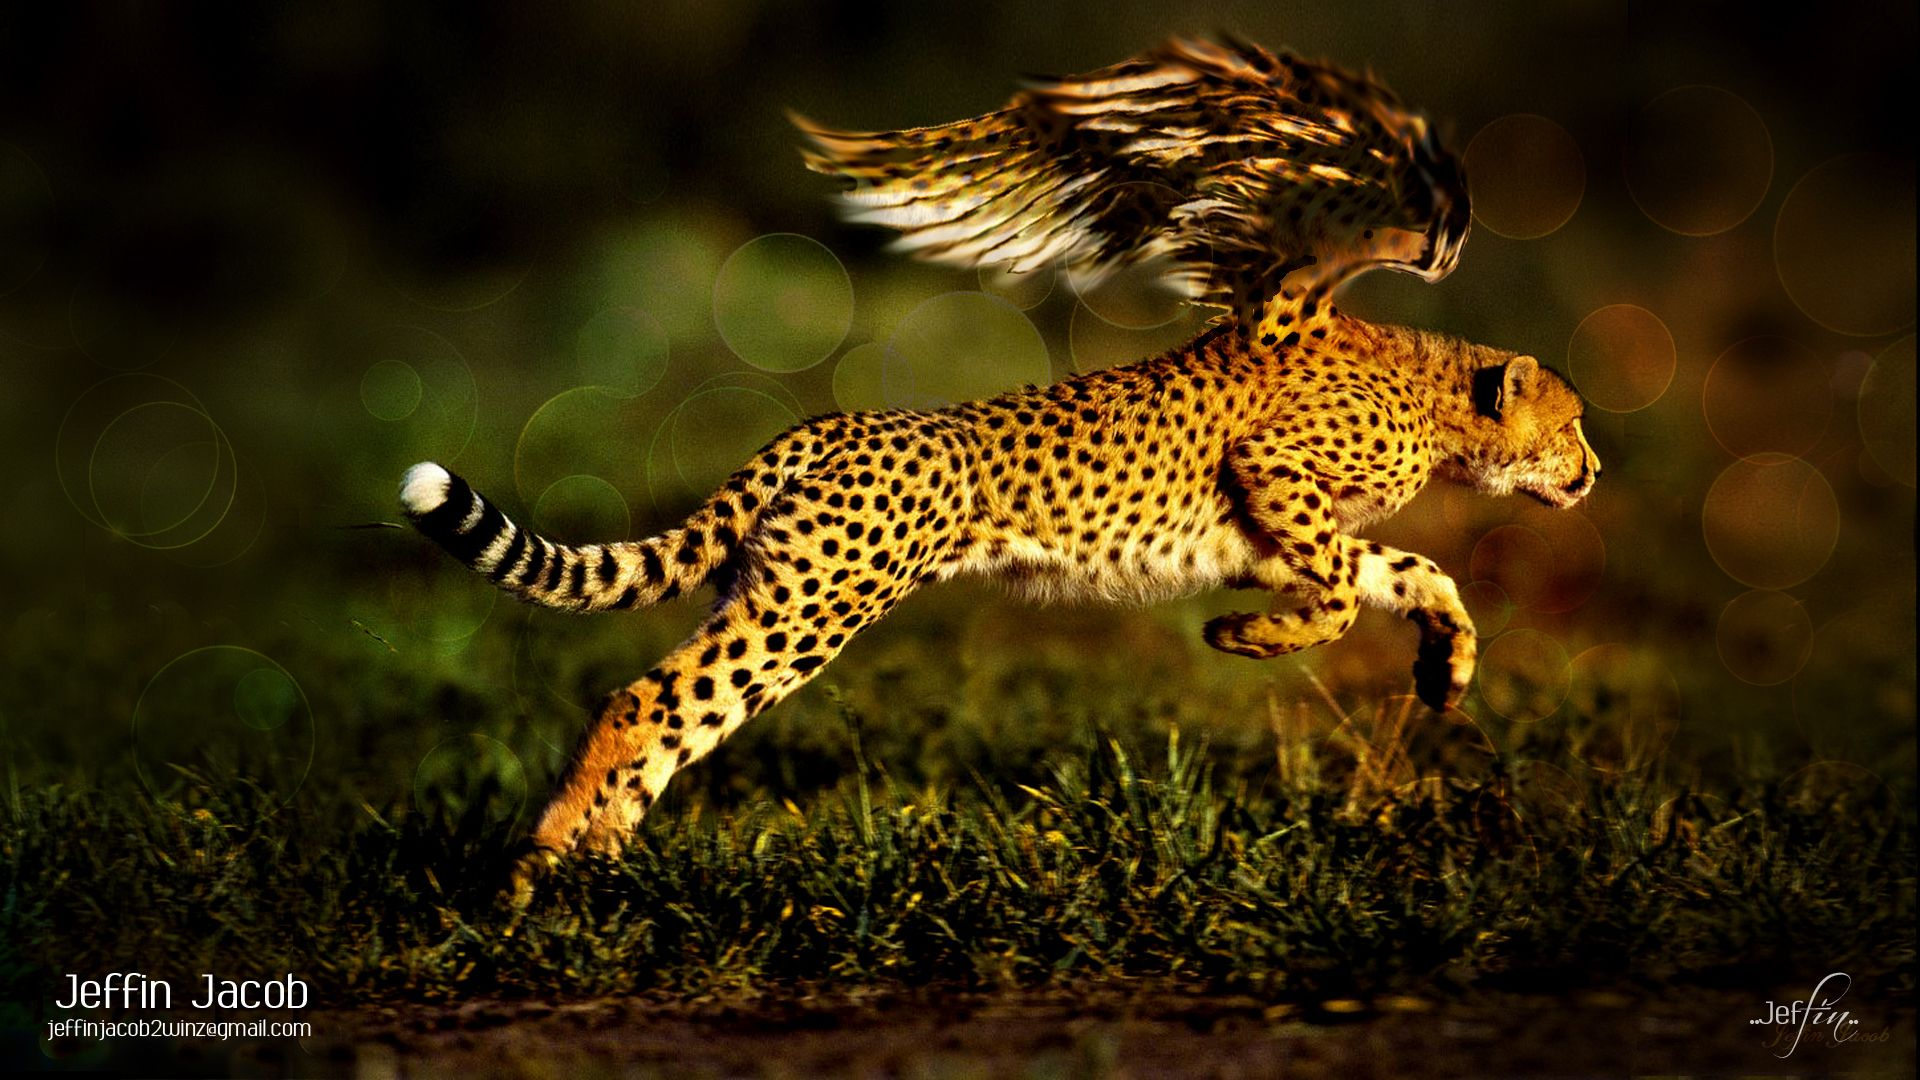 High Definition Quality Desktop Wallpapers For Any Screen Size And Resolutions 1920 1080 Cheetah Wallpaper Jaguar Wallpaper Hd Cool Wallpapers